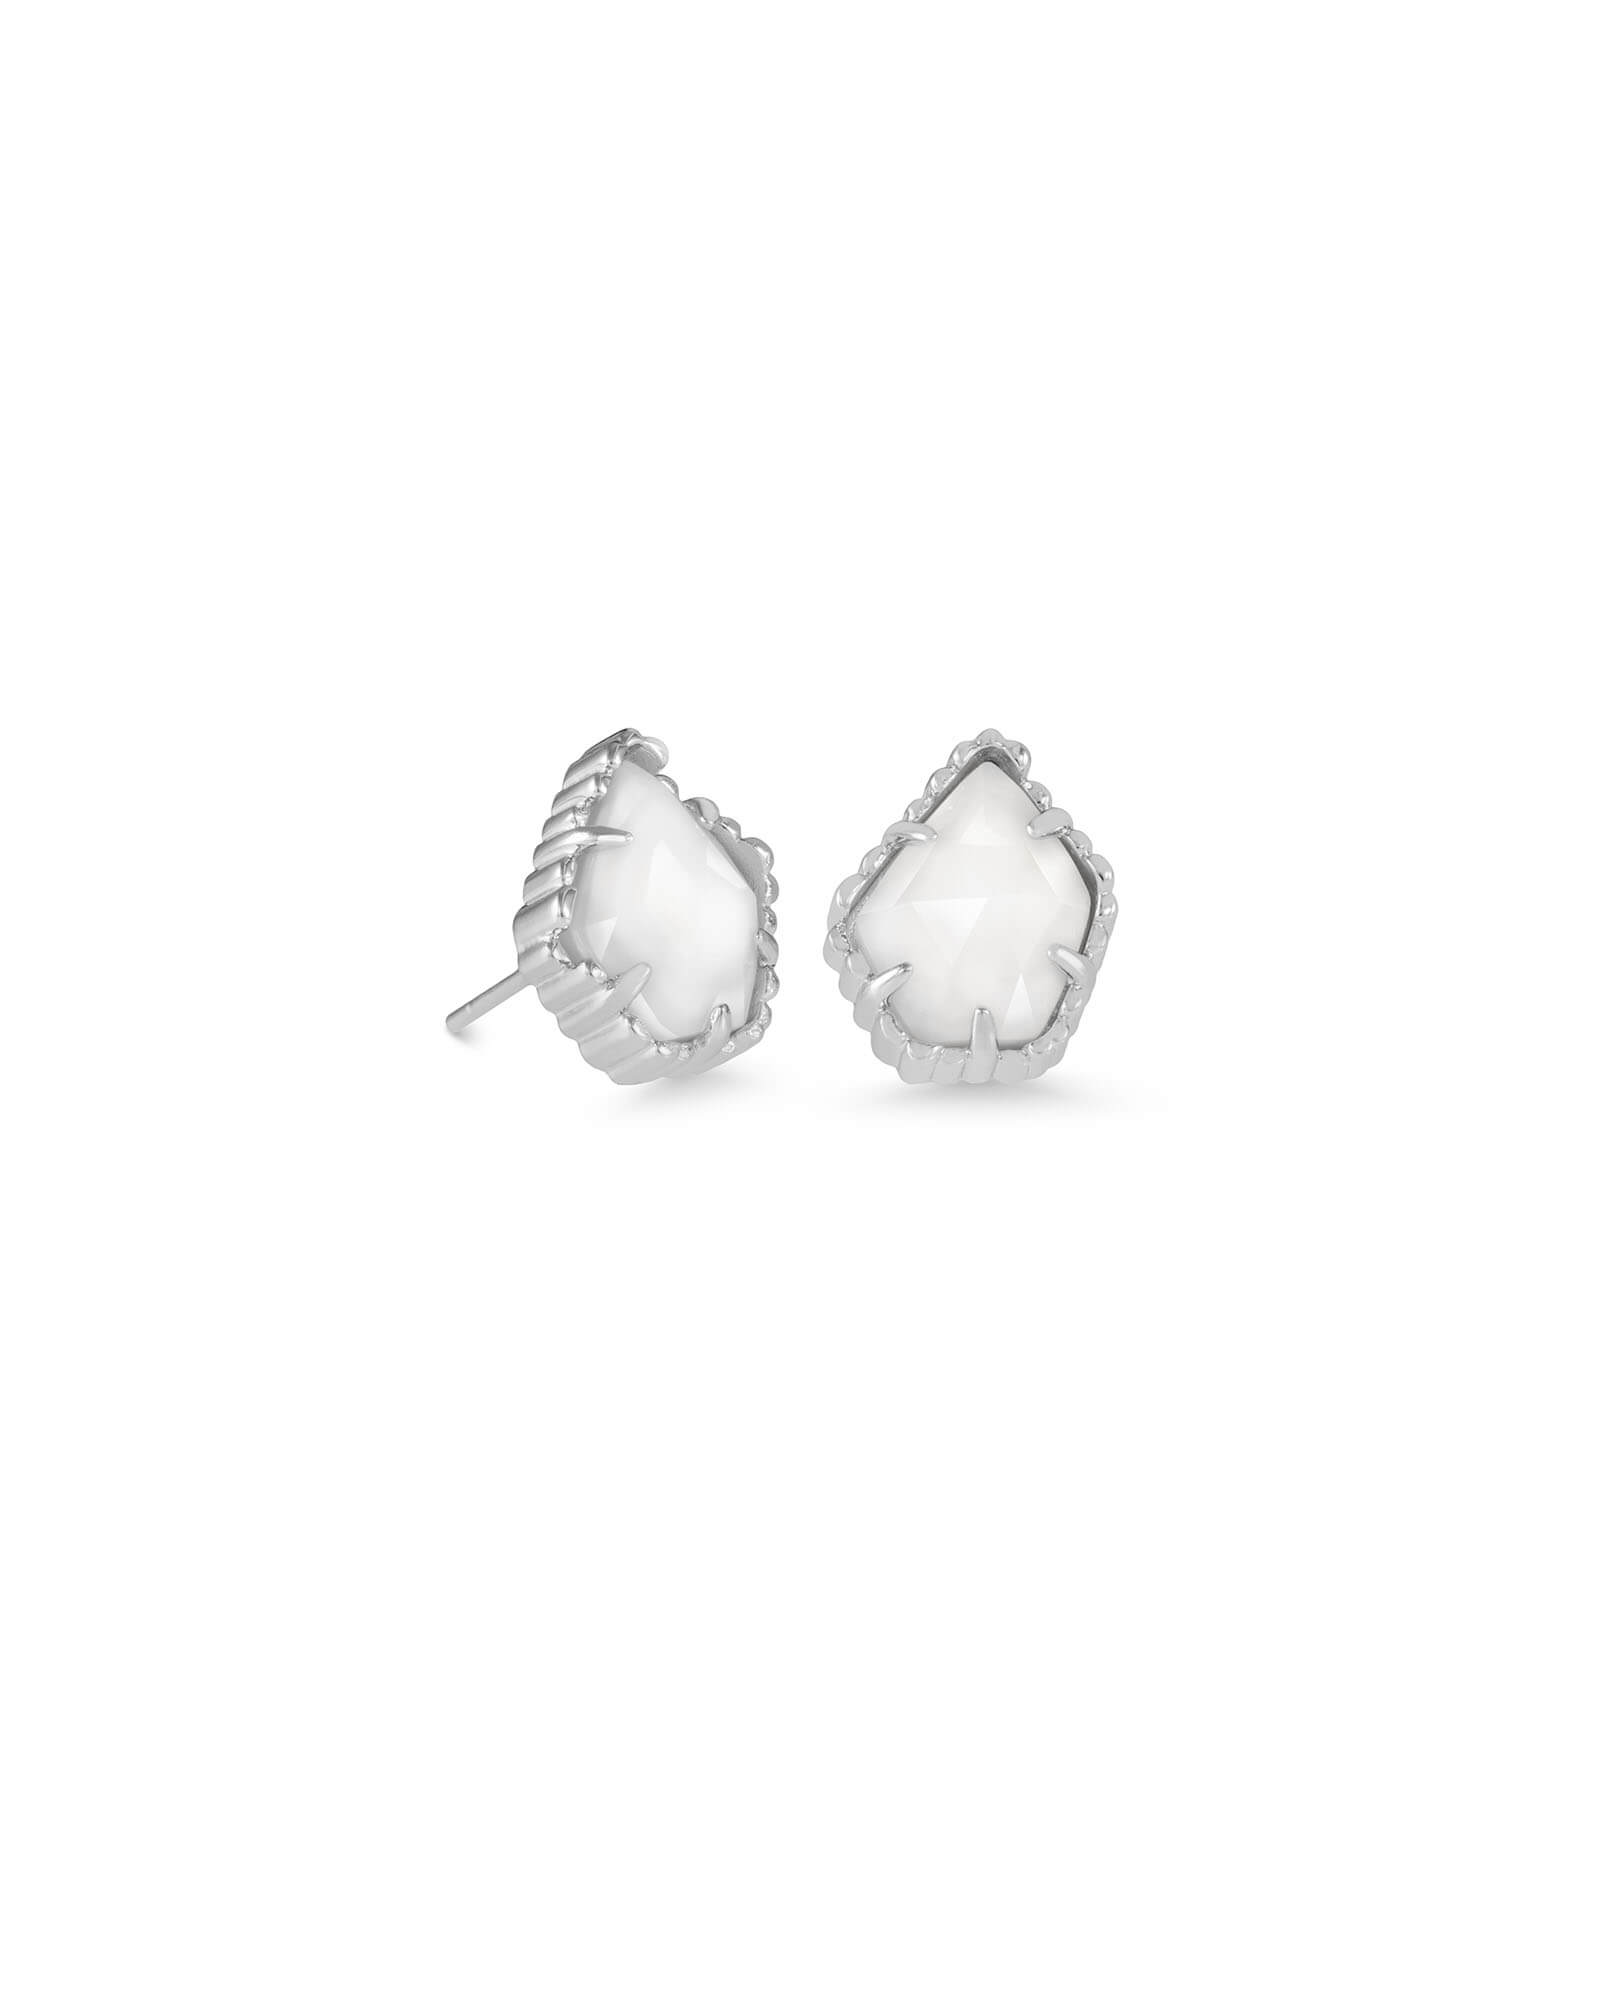 dc17160bc Tessa Silver Stud Earrings in White Pearl | Kendra Scott